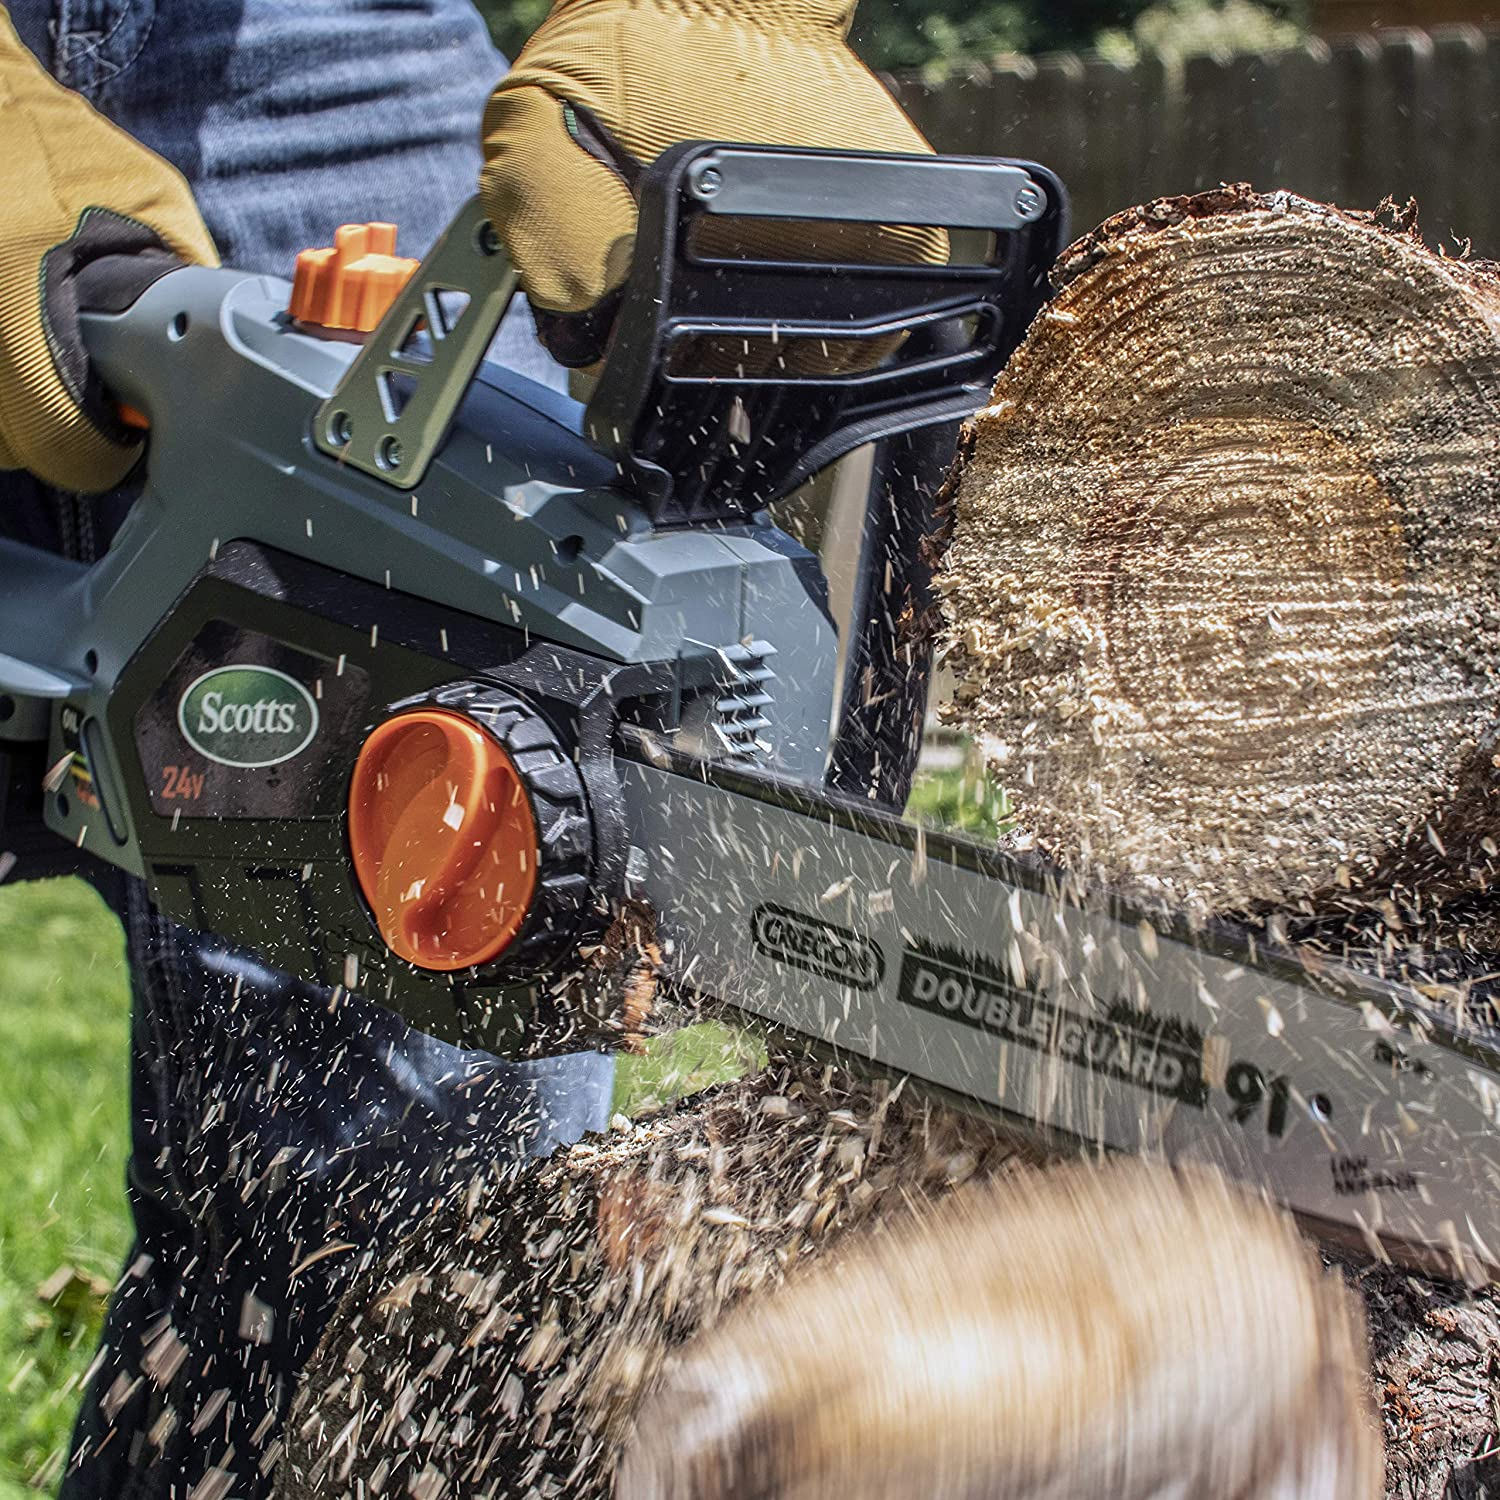 Scotts Outdoor Power Tools LCS31224S featured image 7